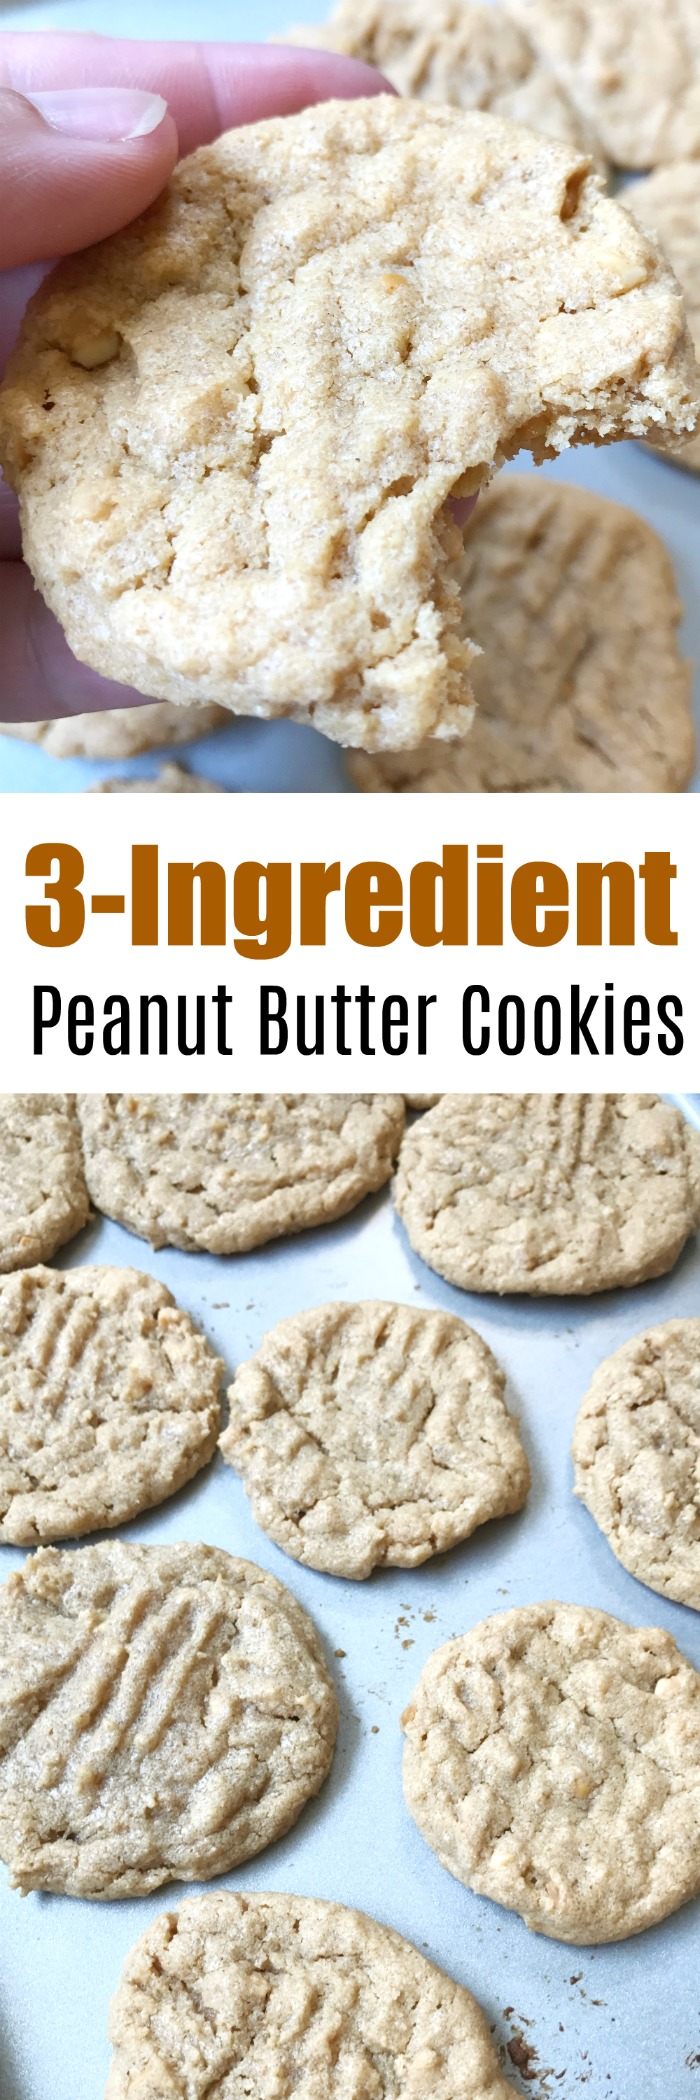 Flourless 3-Ingredient Peanut Butter Cookies. These cookies are so quick and easy to make. They are moist with a little bit of crunch and taste so good. You can use either creamy or crunchy peanut butter for these yummy cookies.